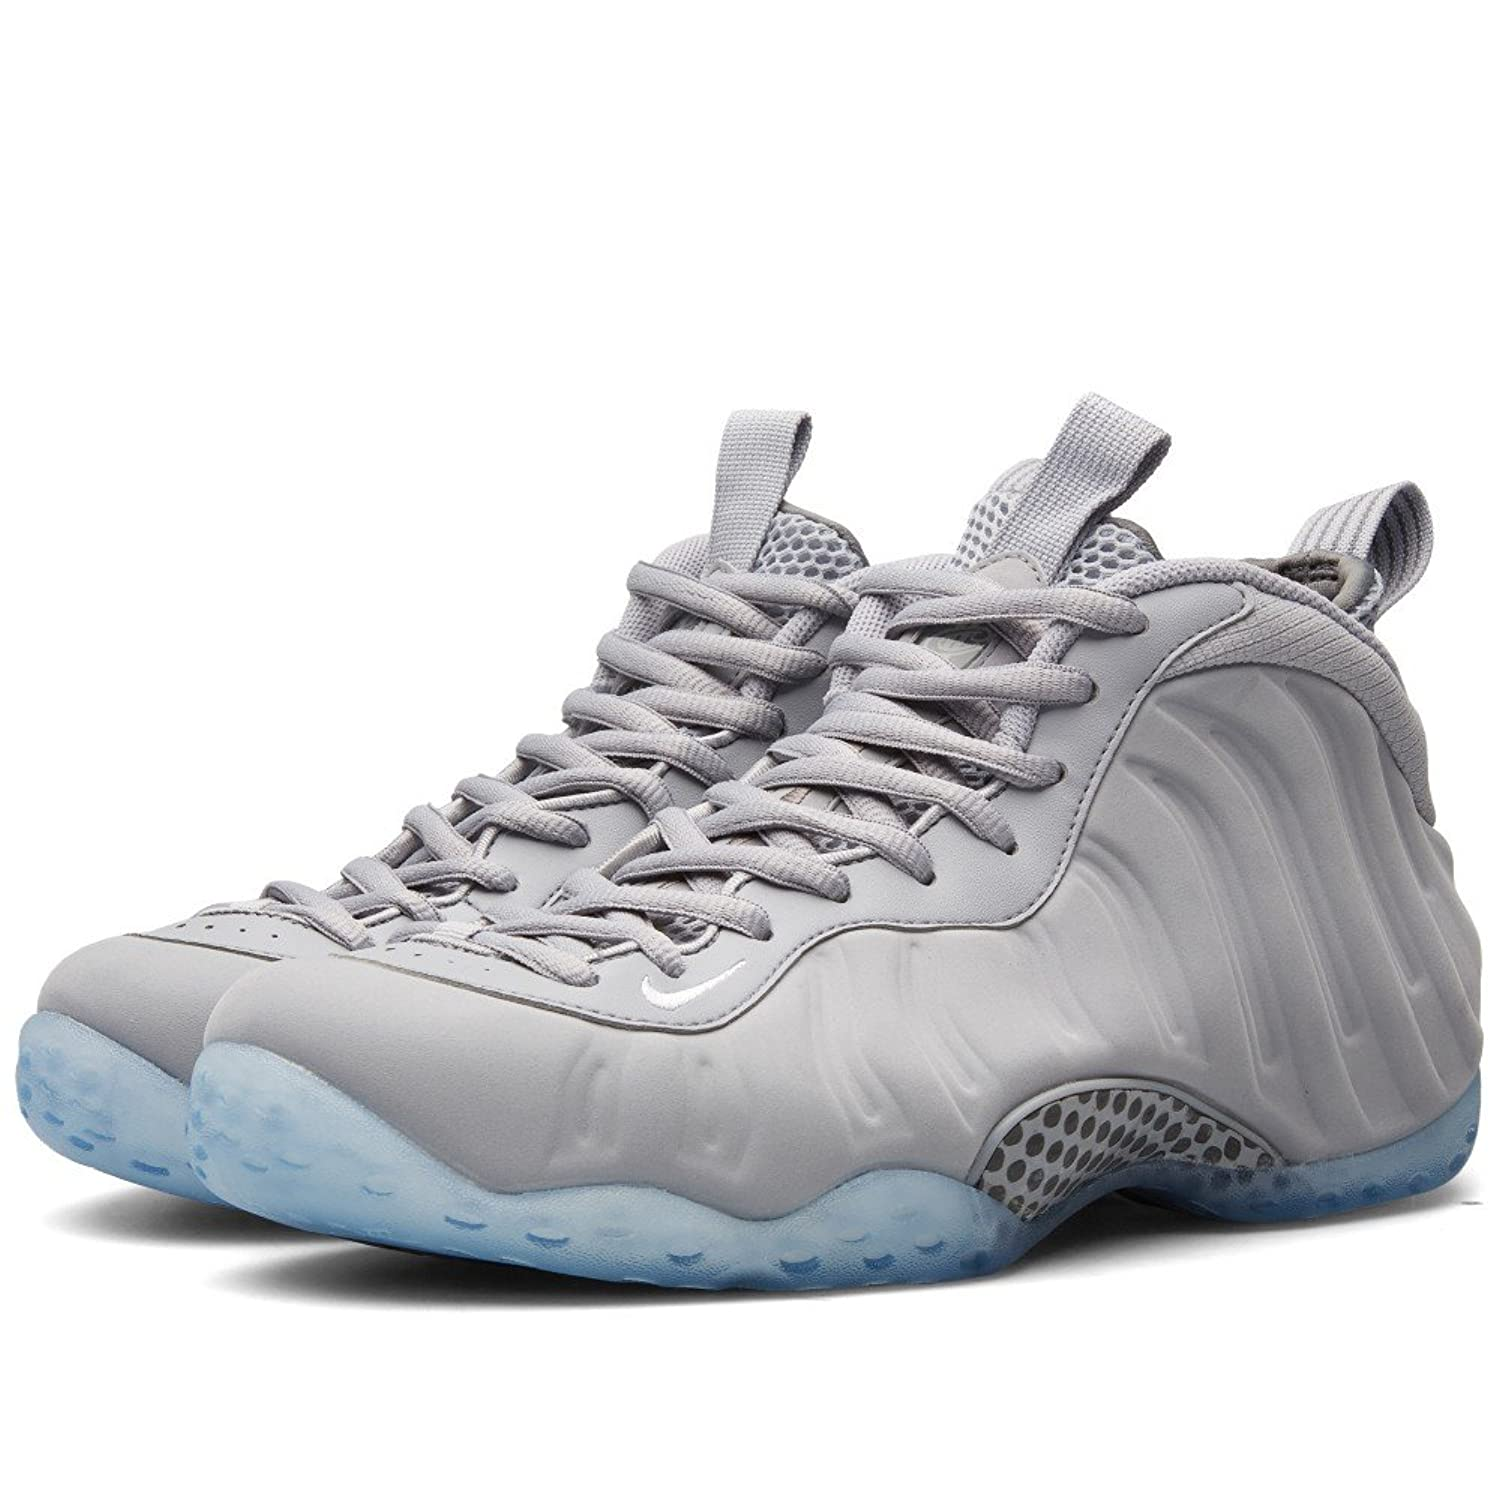 online store 86e19 62d63 on sale Men s Nike Air Foamposite One PRM